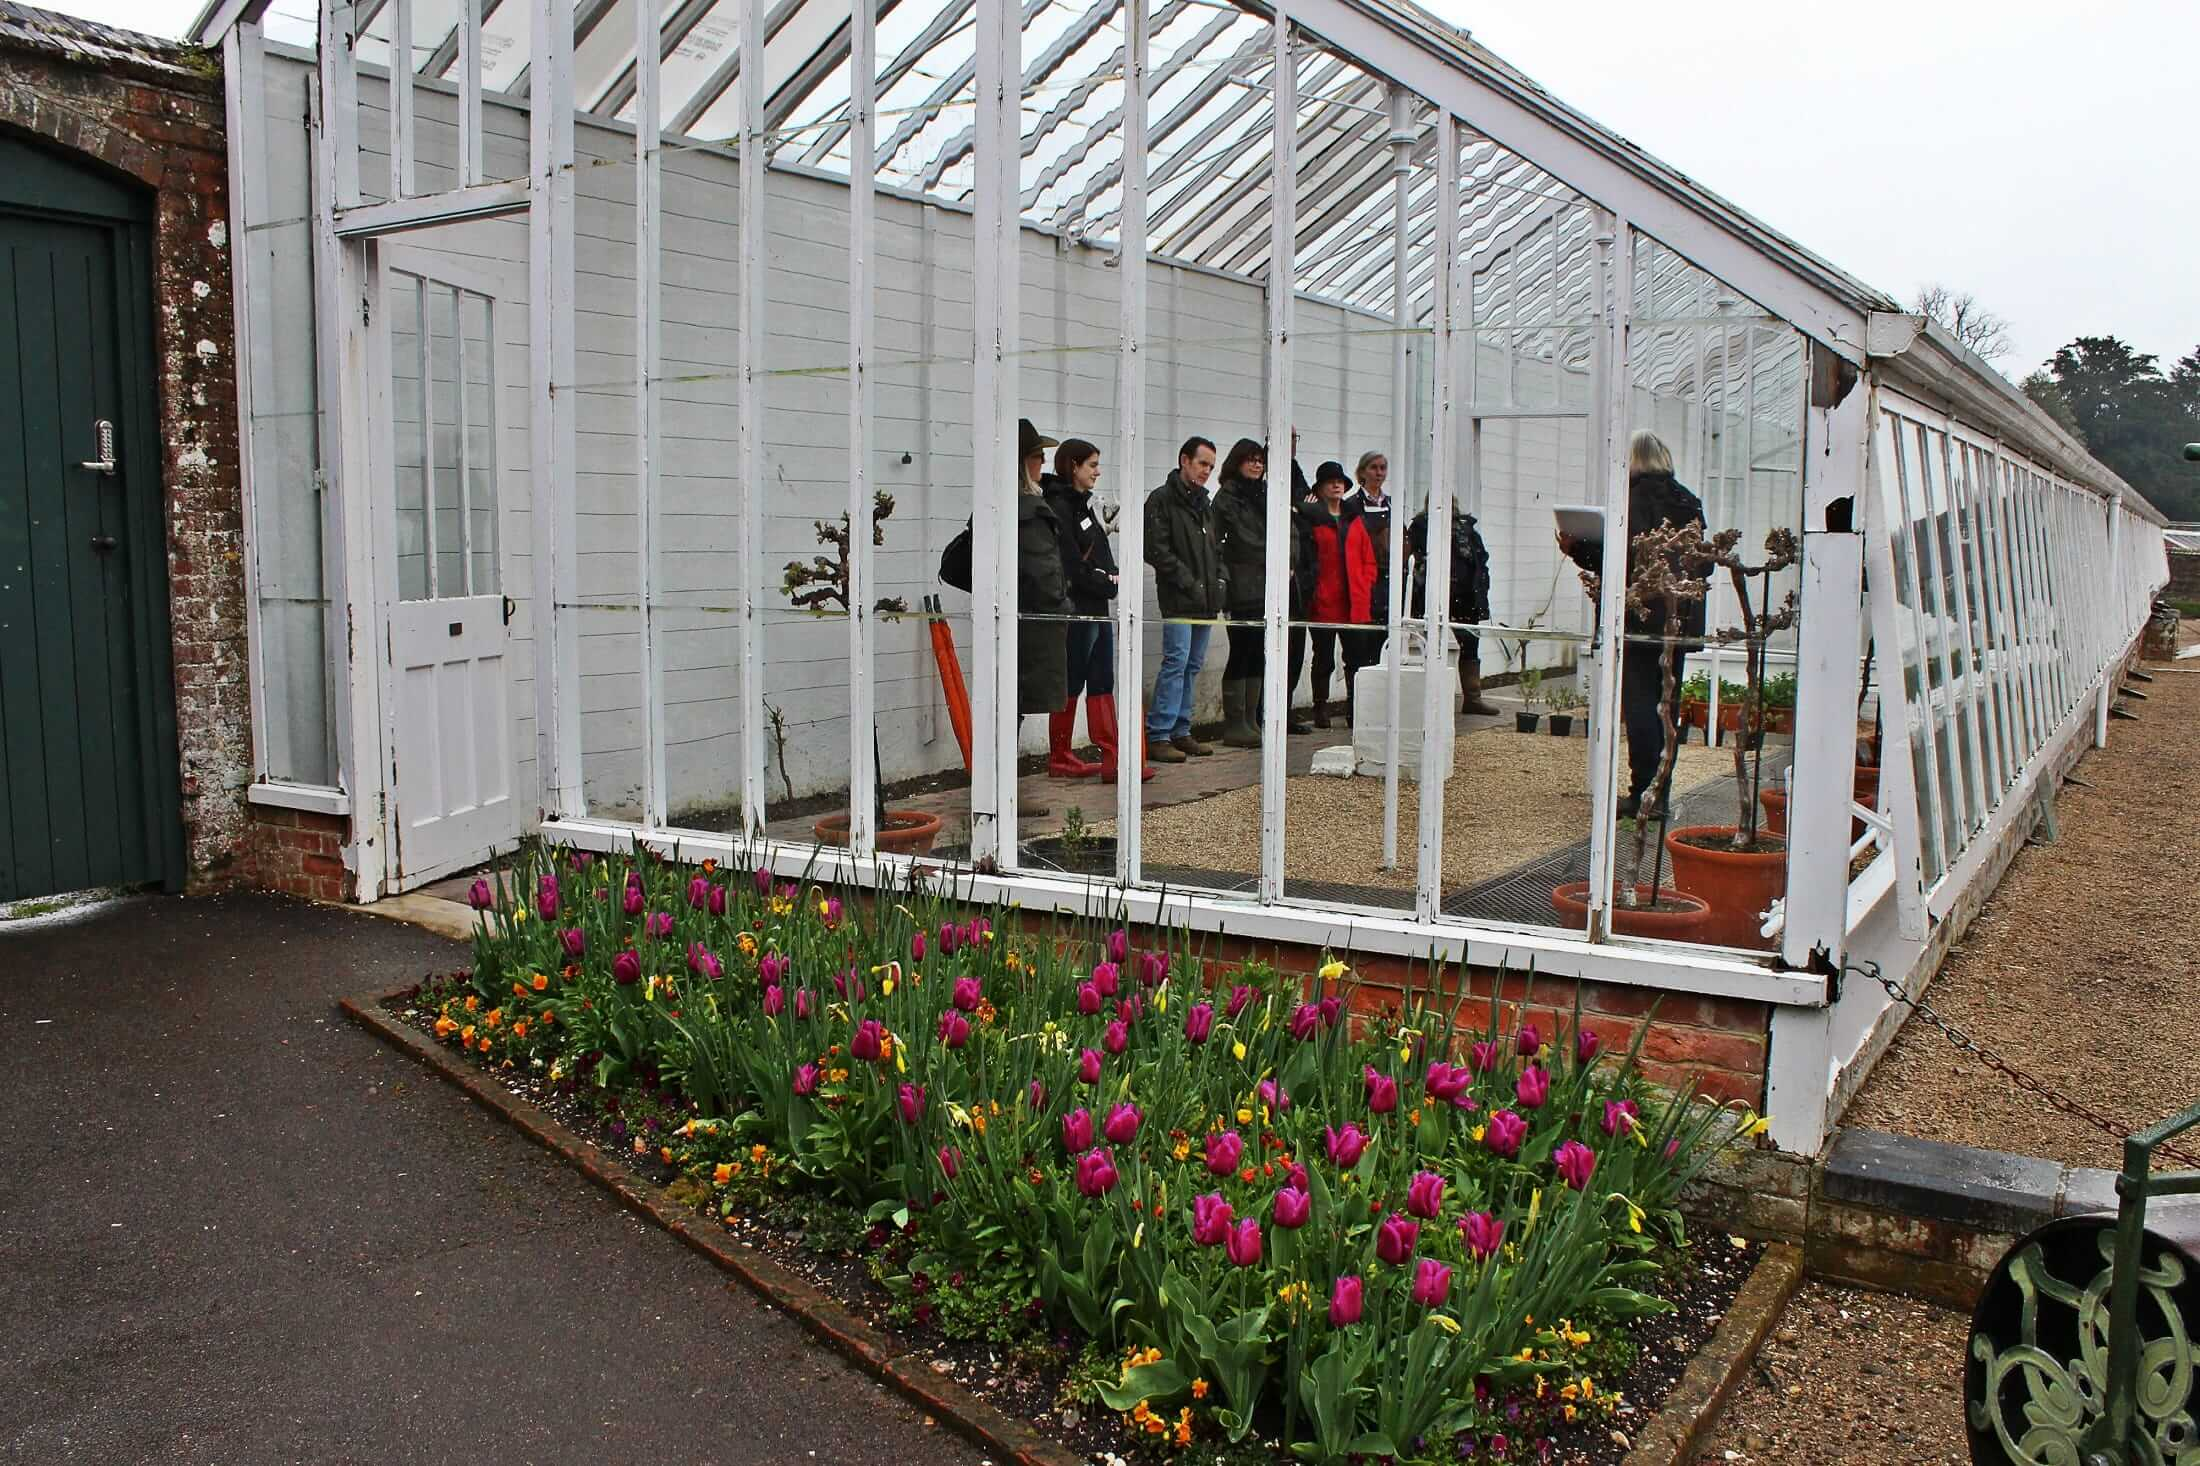 In the West Dean greenhouse